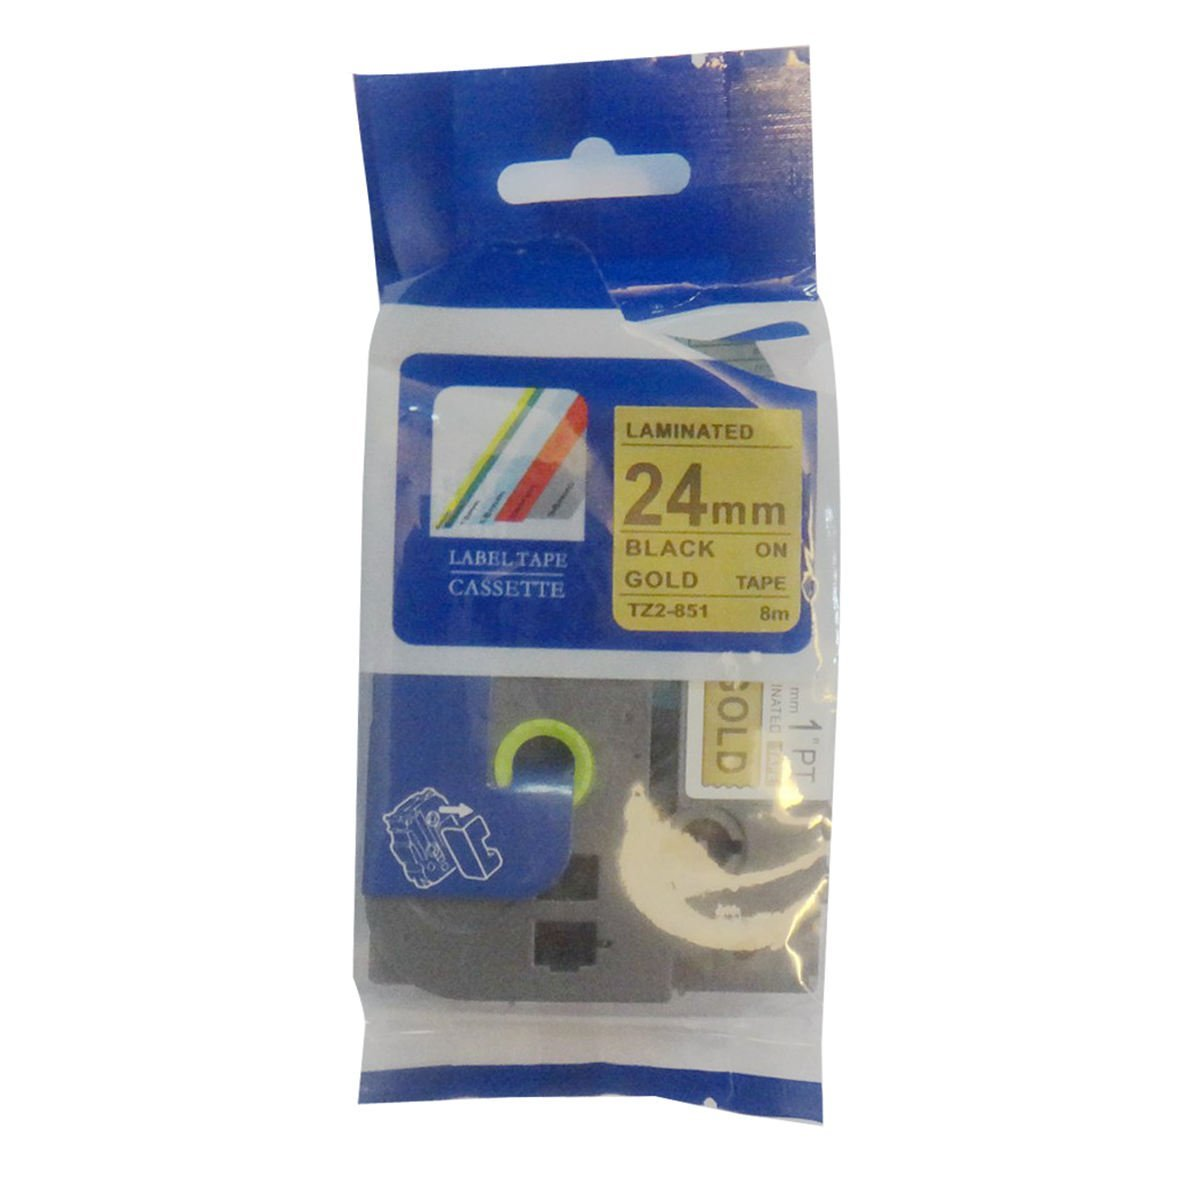 QPMY 2 Pack Compatible for Brother P-Touch Laminated Tze TZ Label Tape Cartridge 24mm x 8m TZe-155 White on Clear